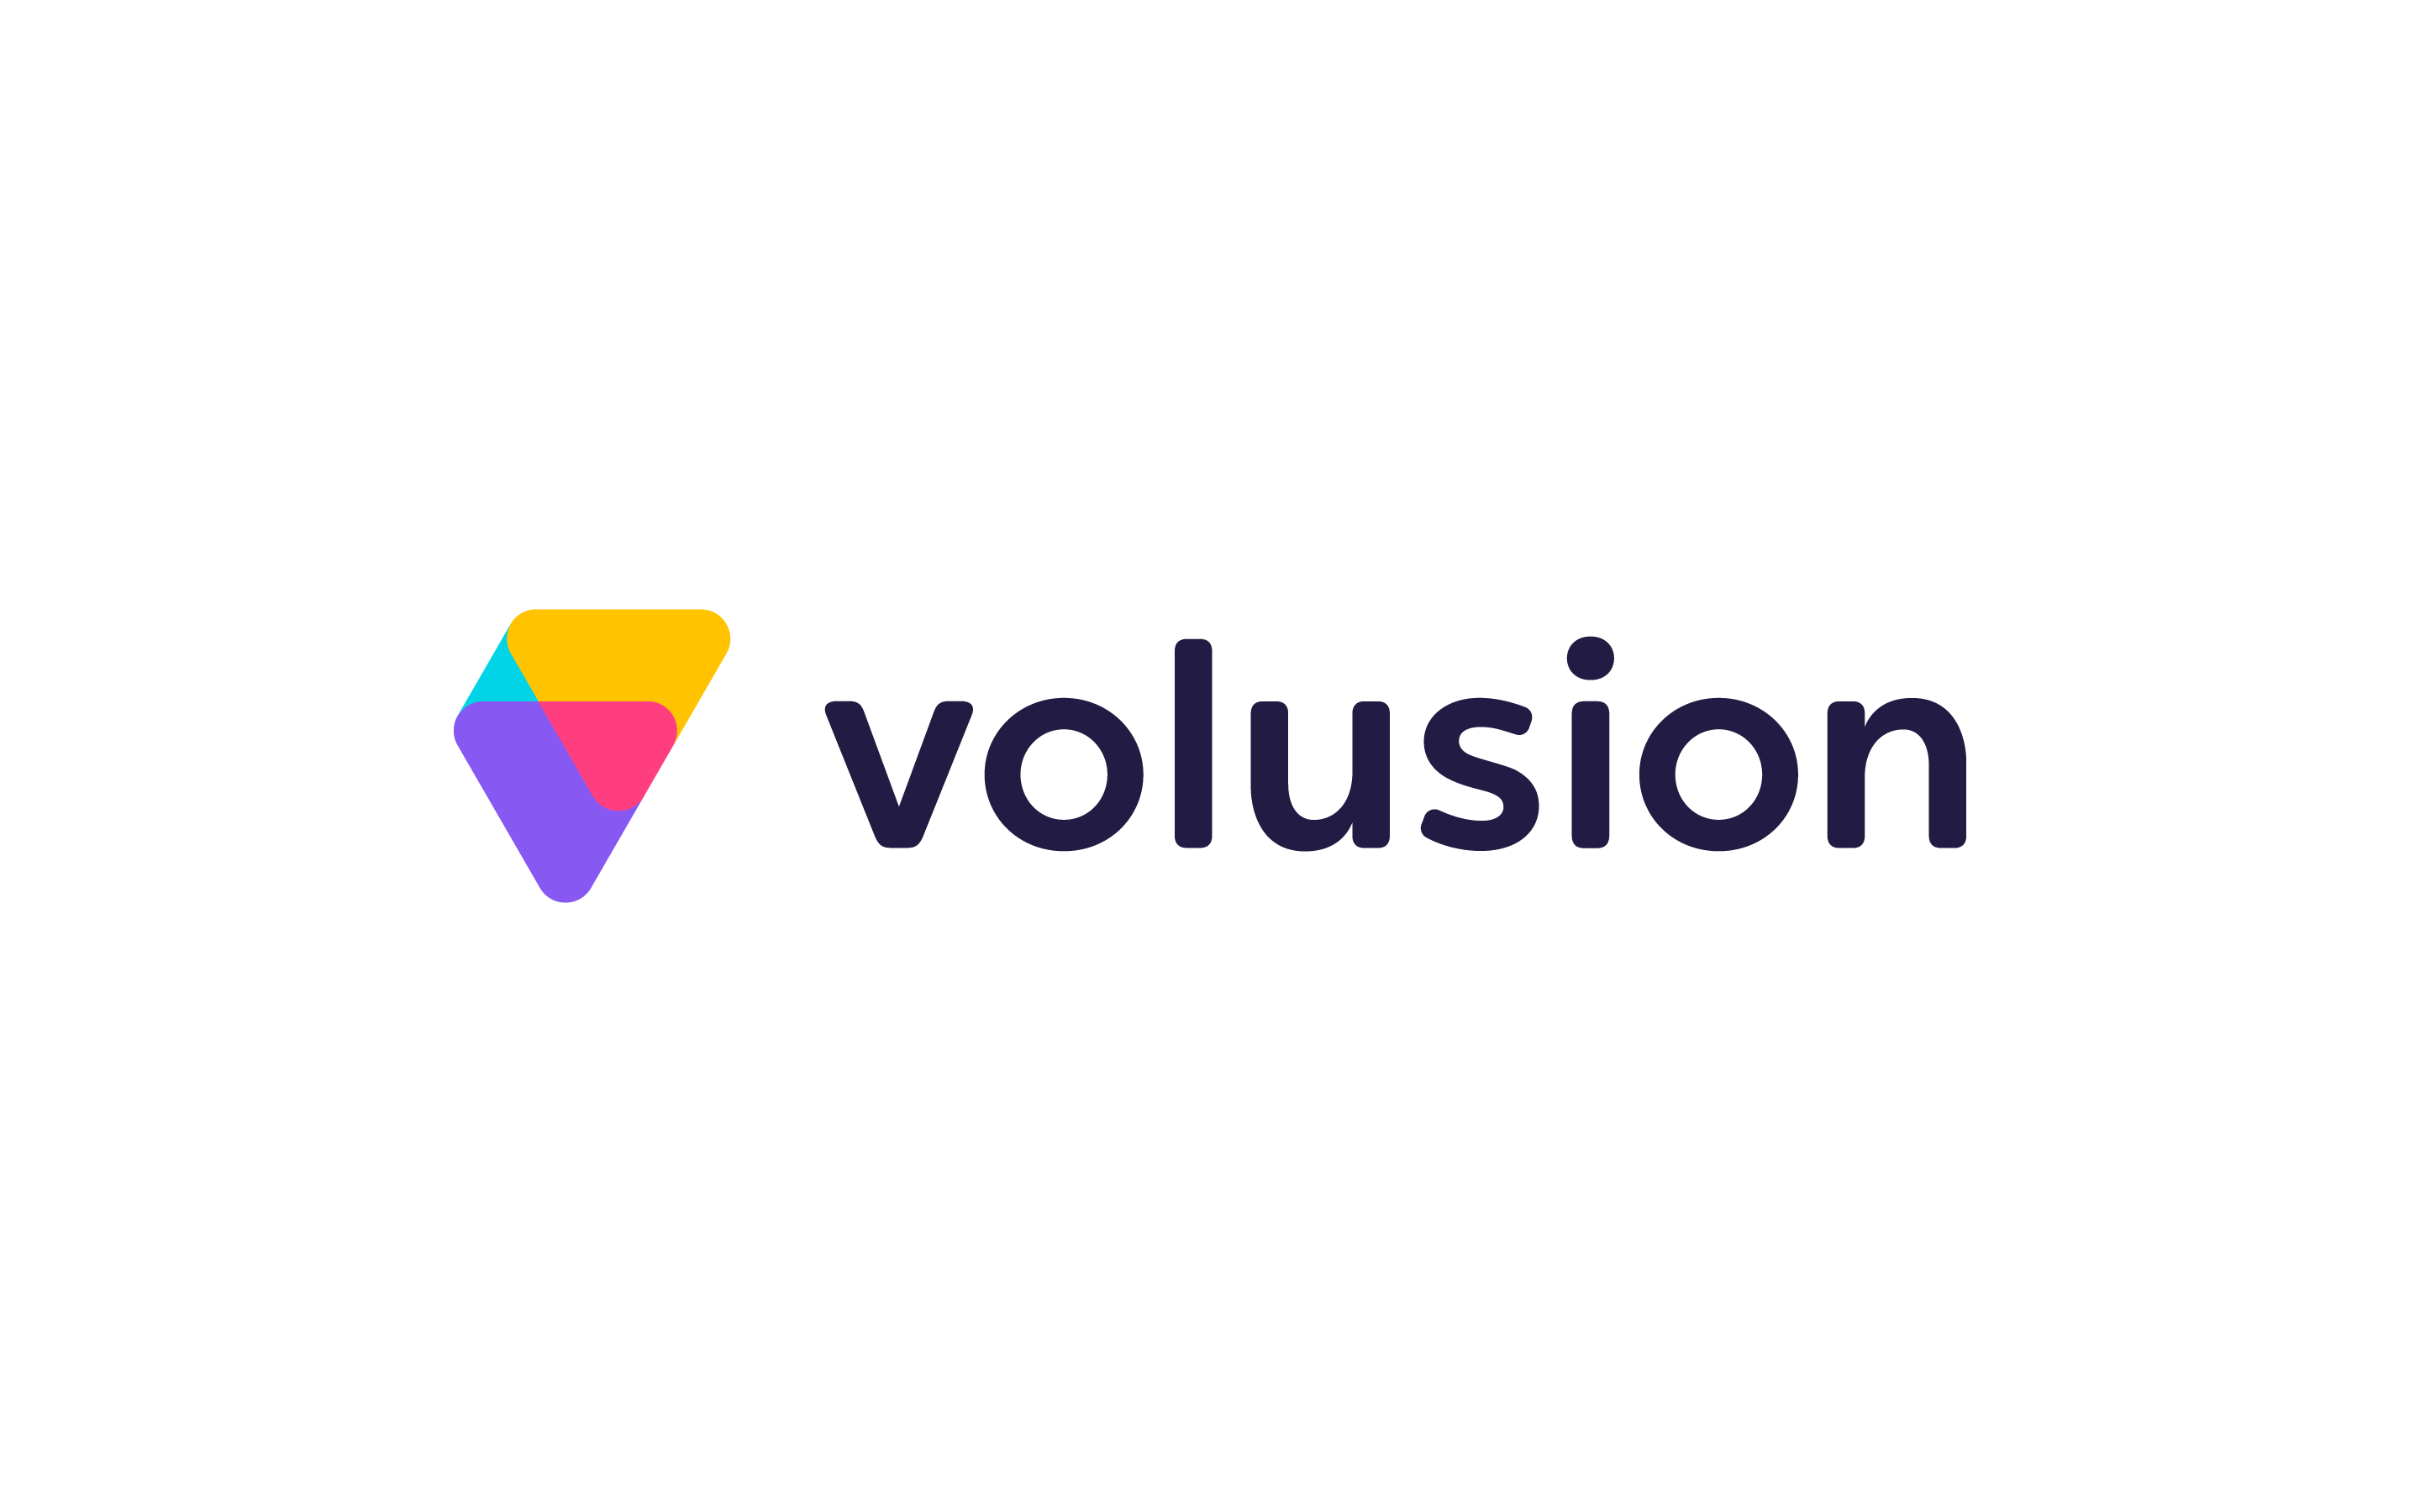 Volusion company logo